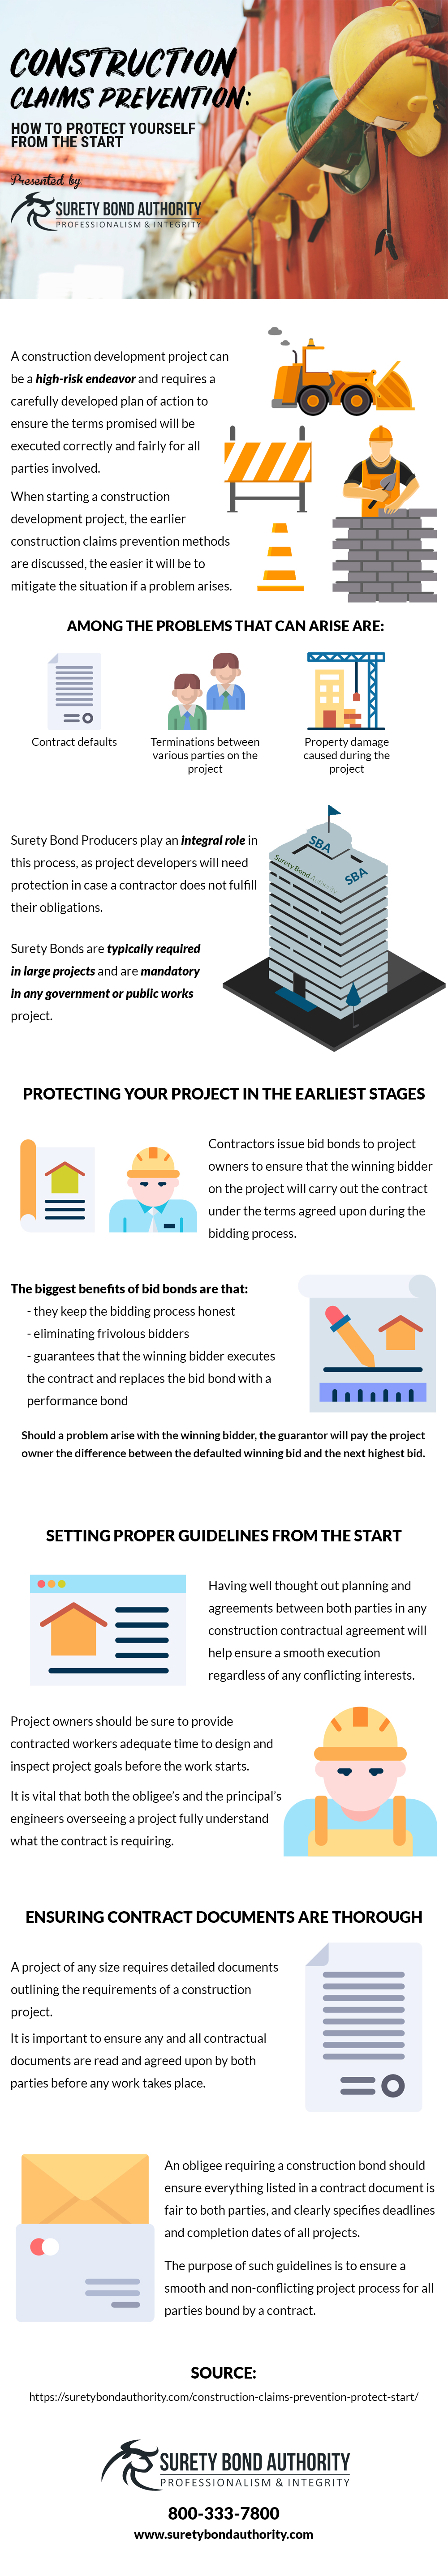 Construction Claims Prevention Infographic